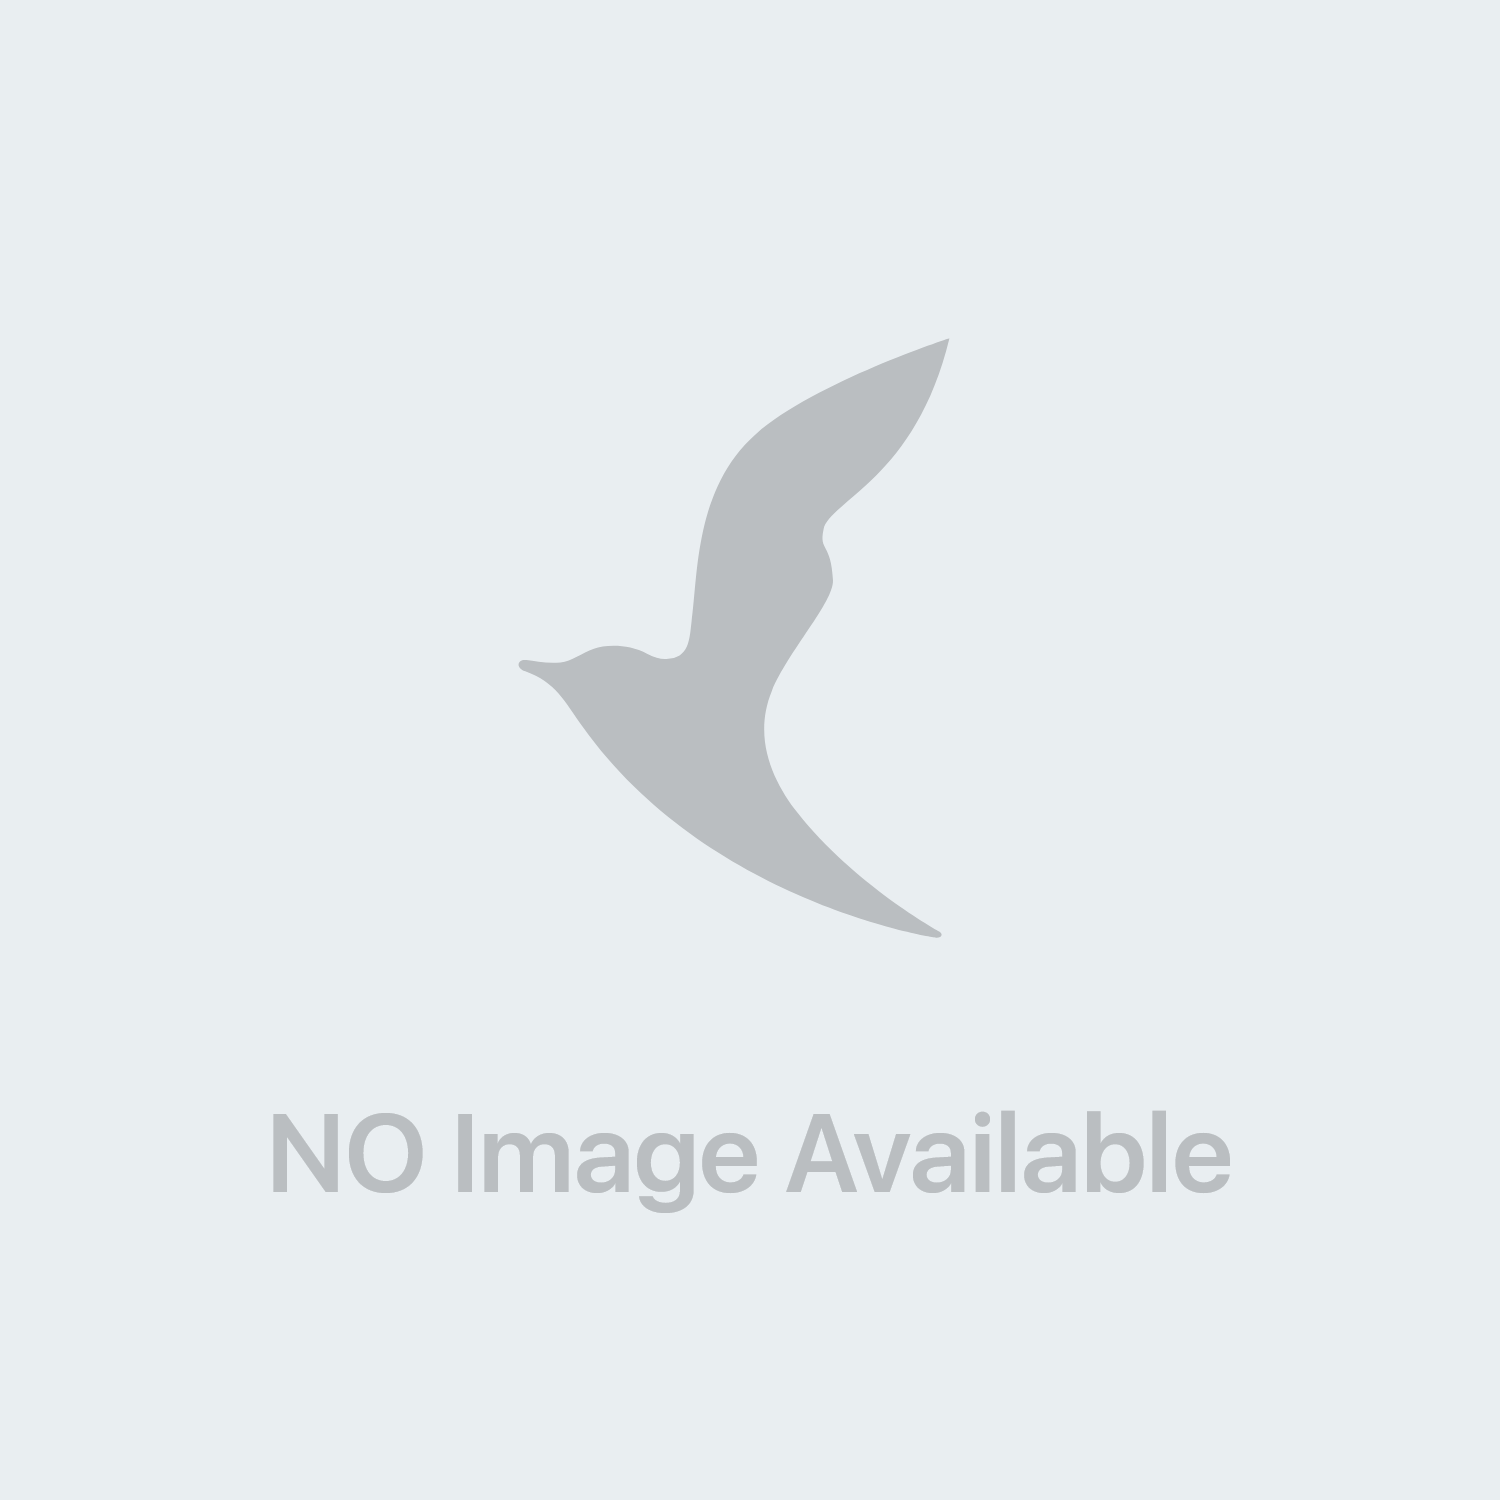 Pic Steril Box Provetta Per Urine 10 Ml